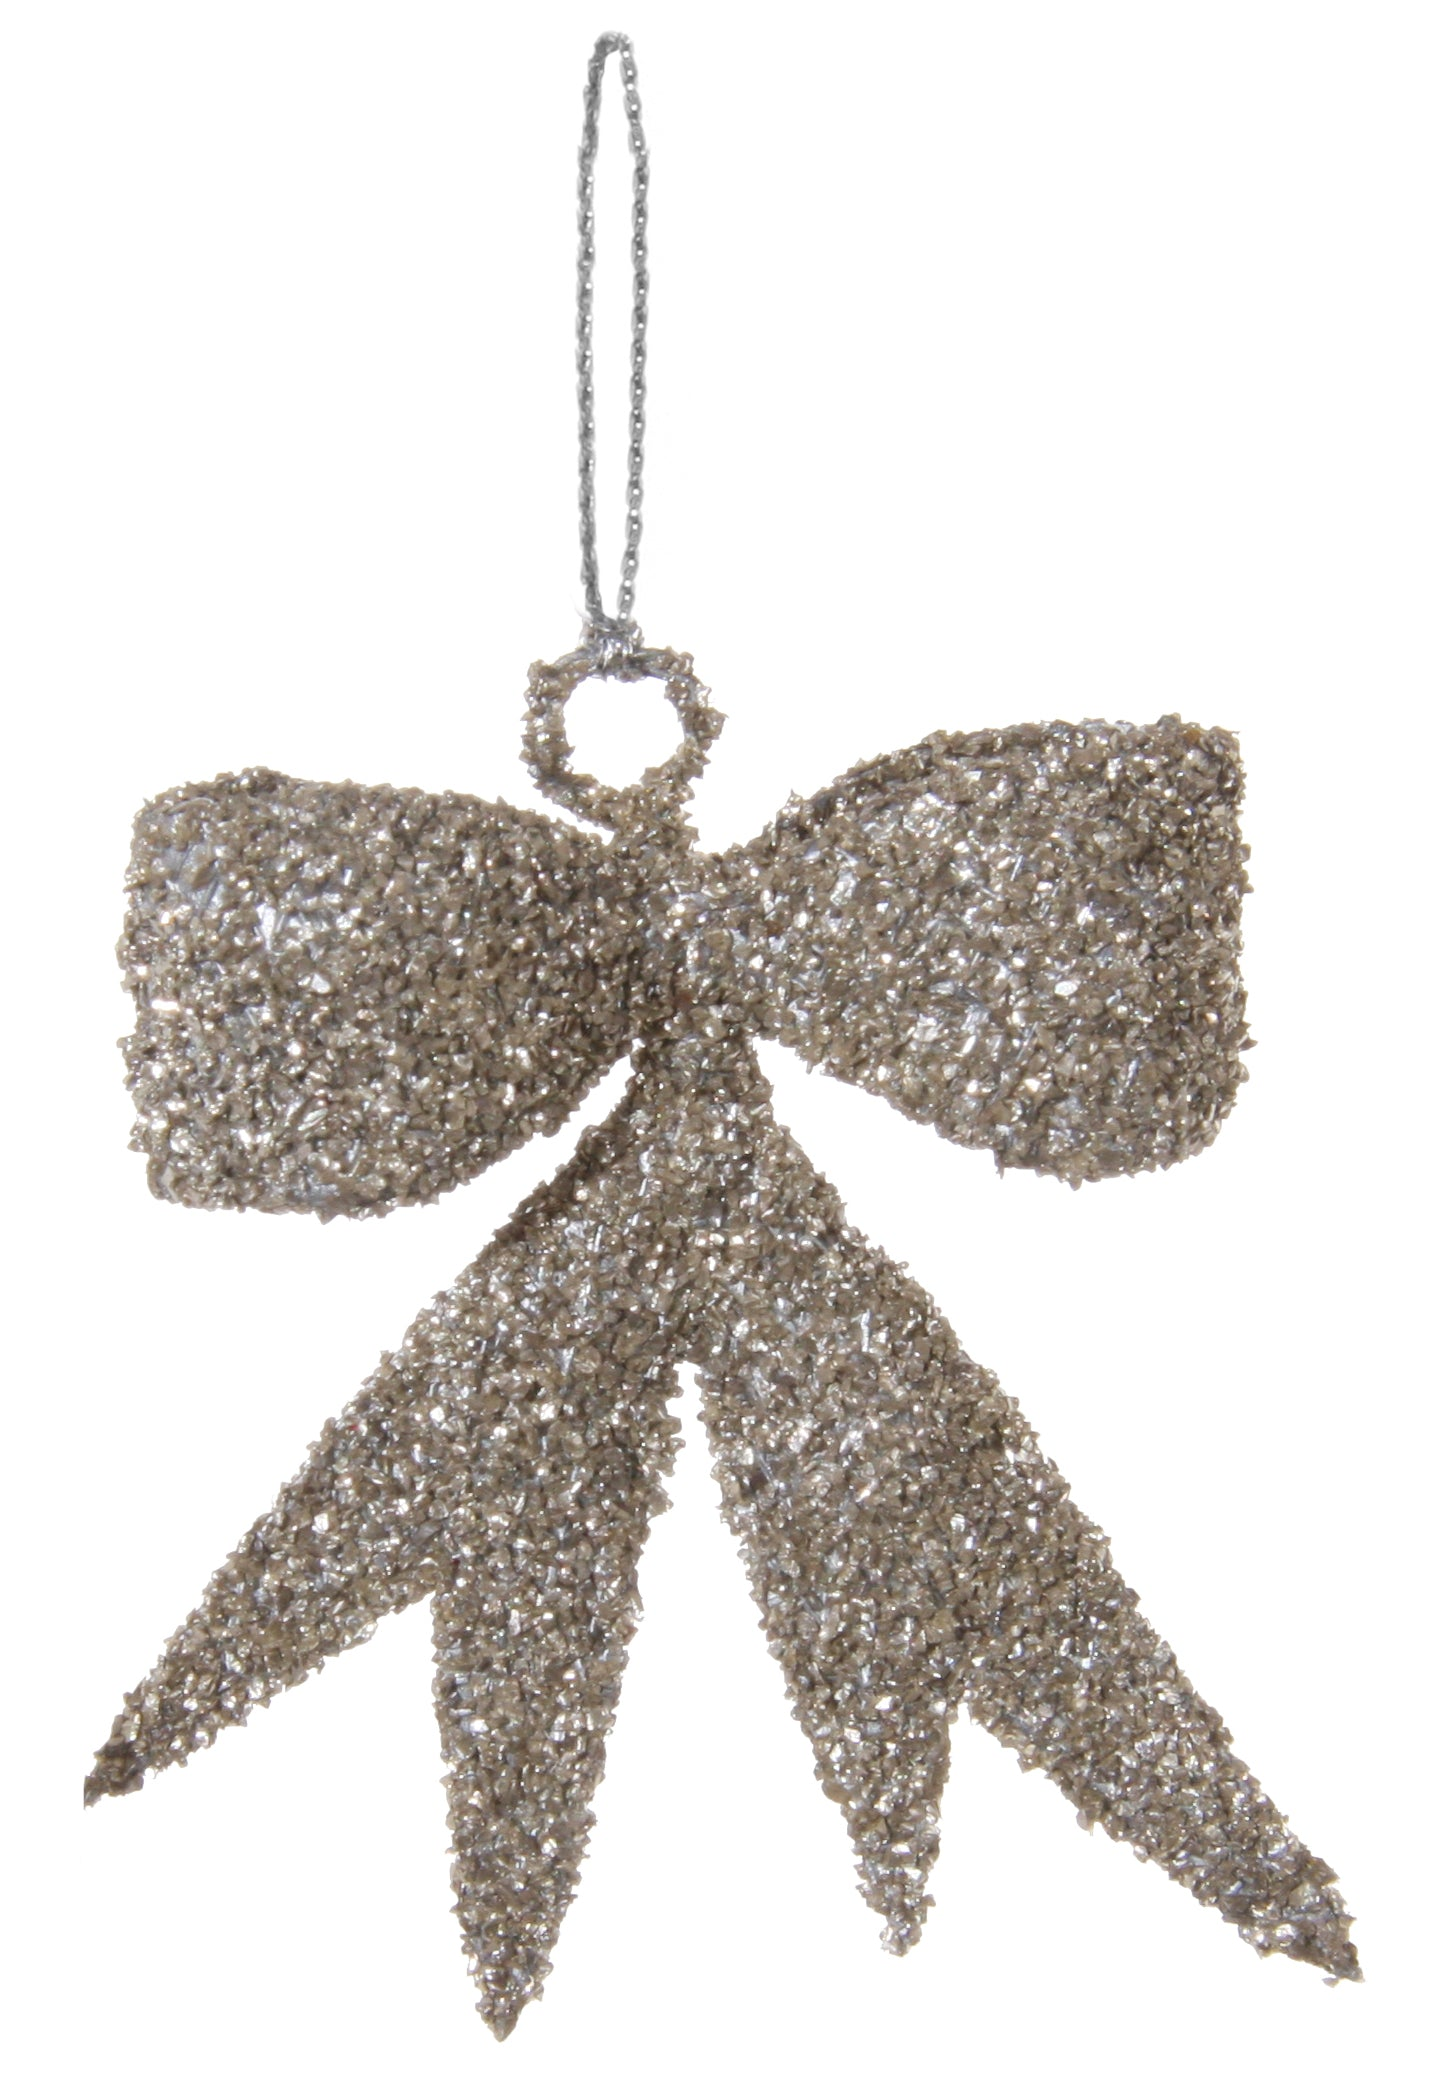 Glass Glitter Bow Ornaments - Antiqued Ornament